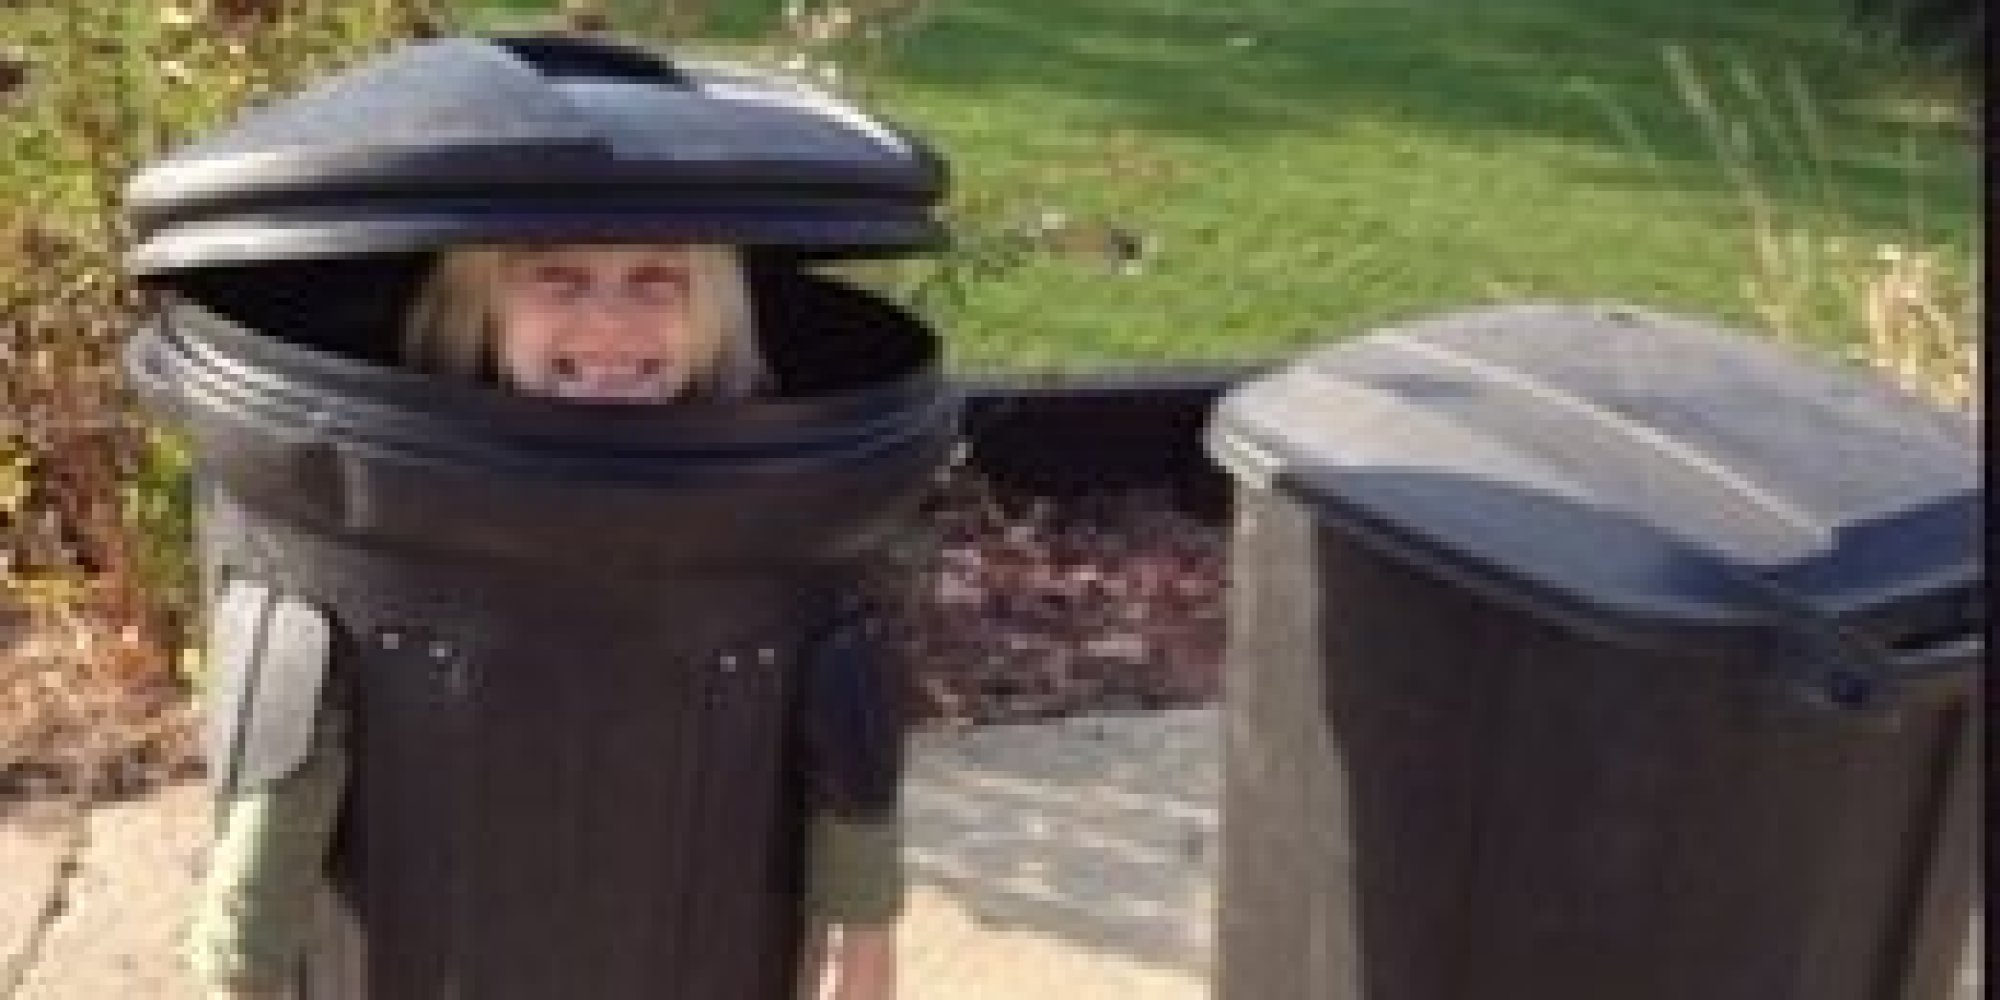 Little Girl Wants To Take The Trash Out ... And Wear It For Halloween |  HuffPost